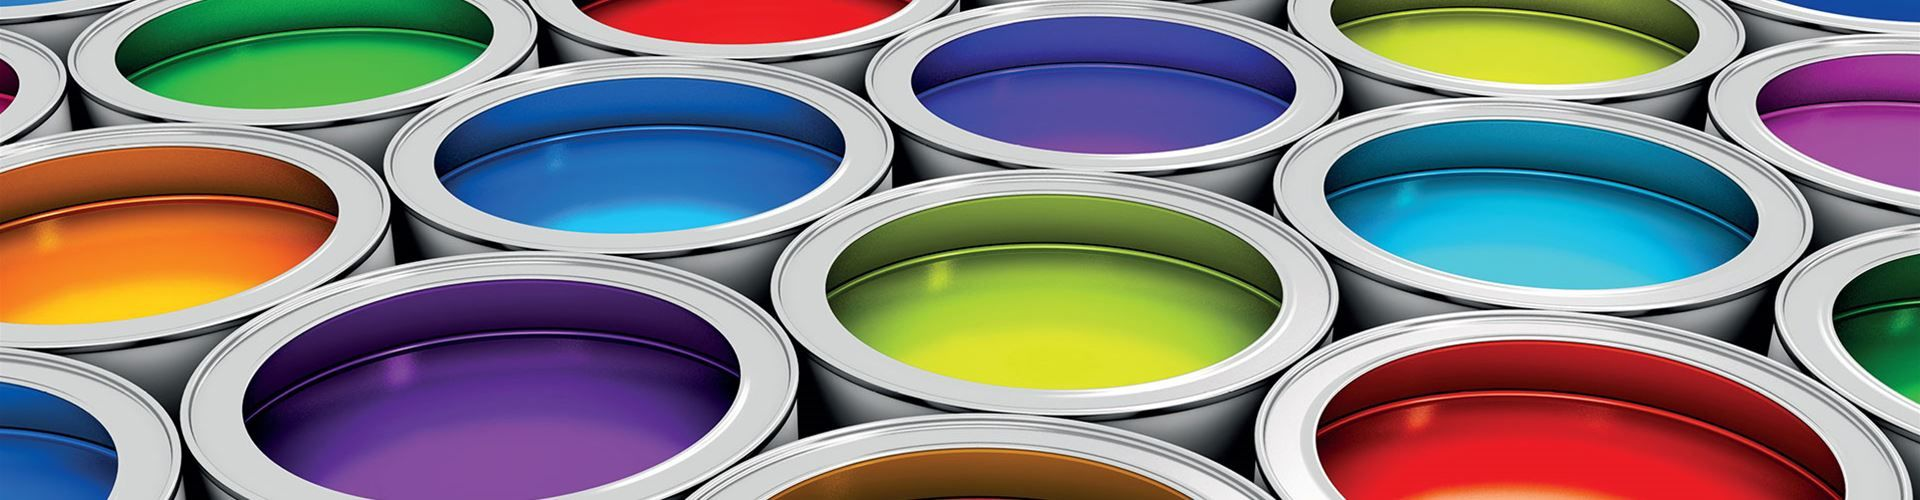 Ceramic inks for digital glass printer machines | Tecglass